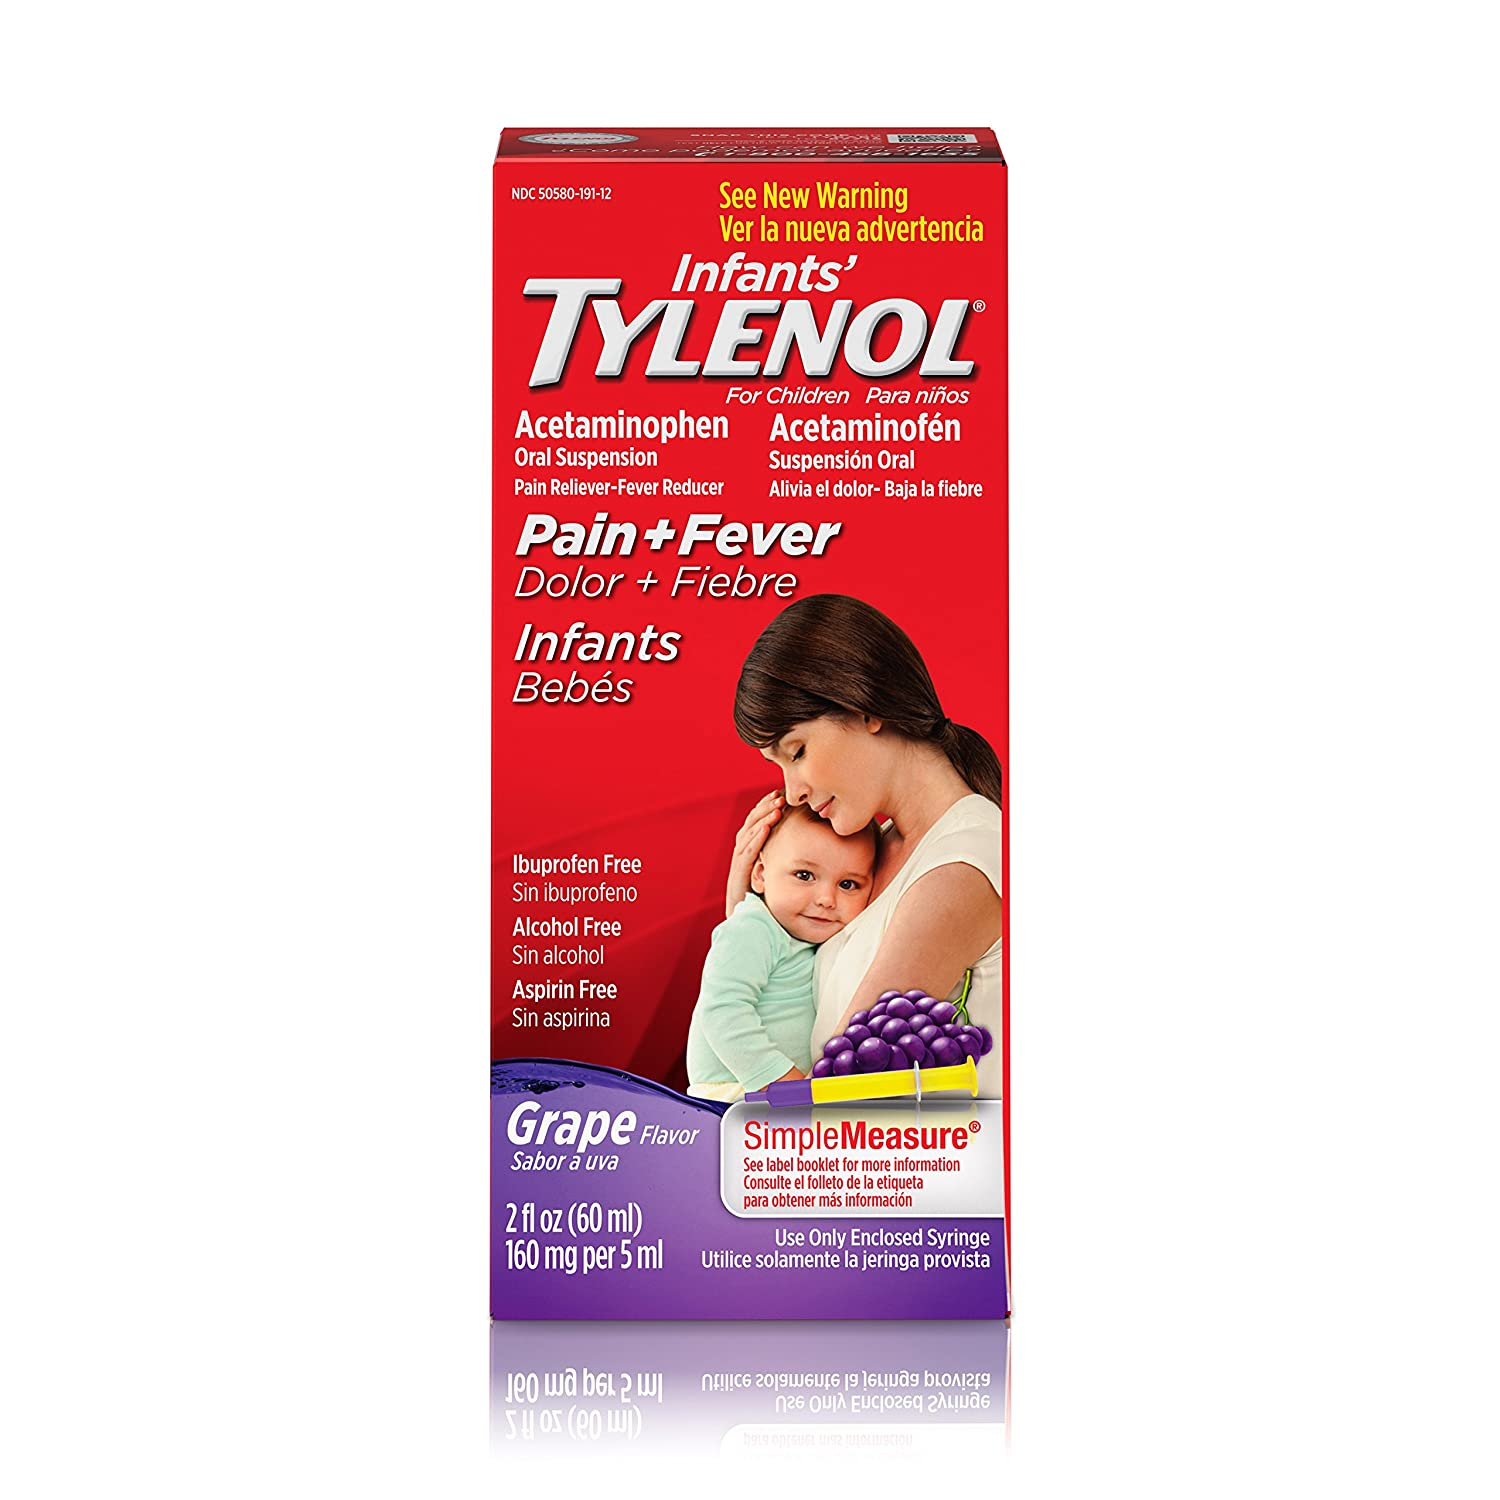 How to take ibuprofen for children and newborns (video tip)